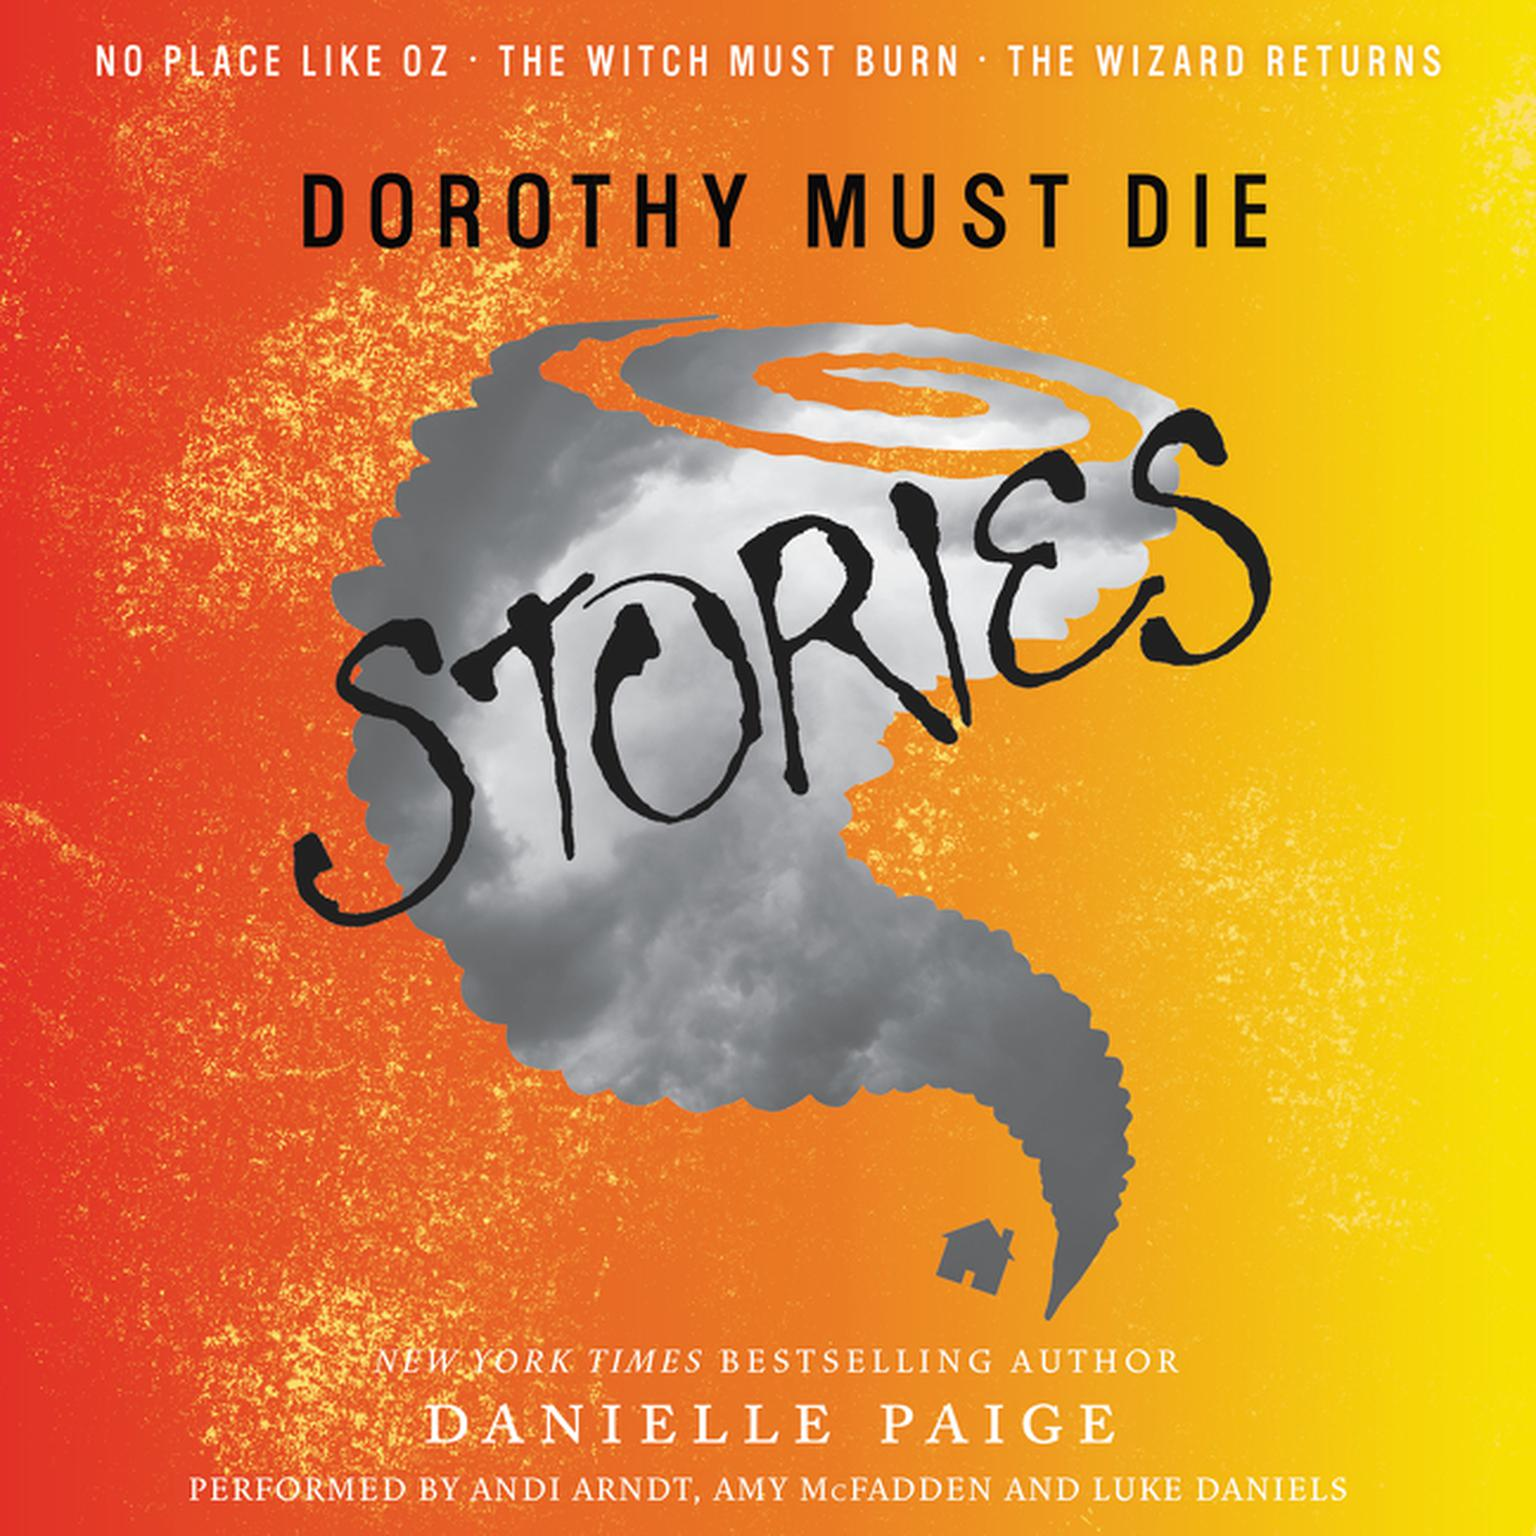 Printable Dorothy Must Die Stories: No Place like Oz, The Witch Must Burn, The Wizard Returns Audiobook Cover Art